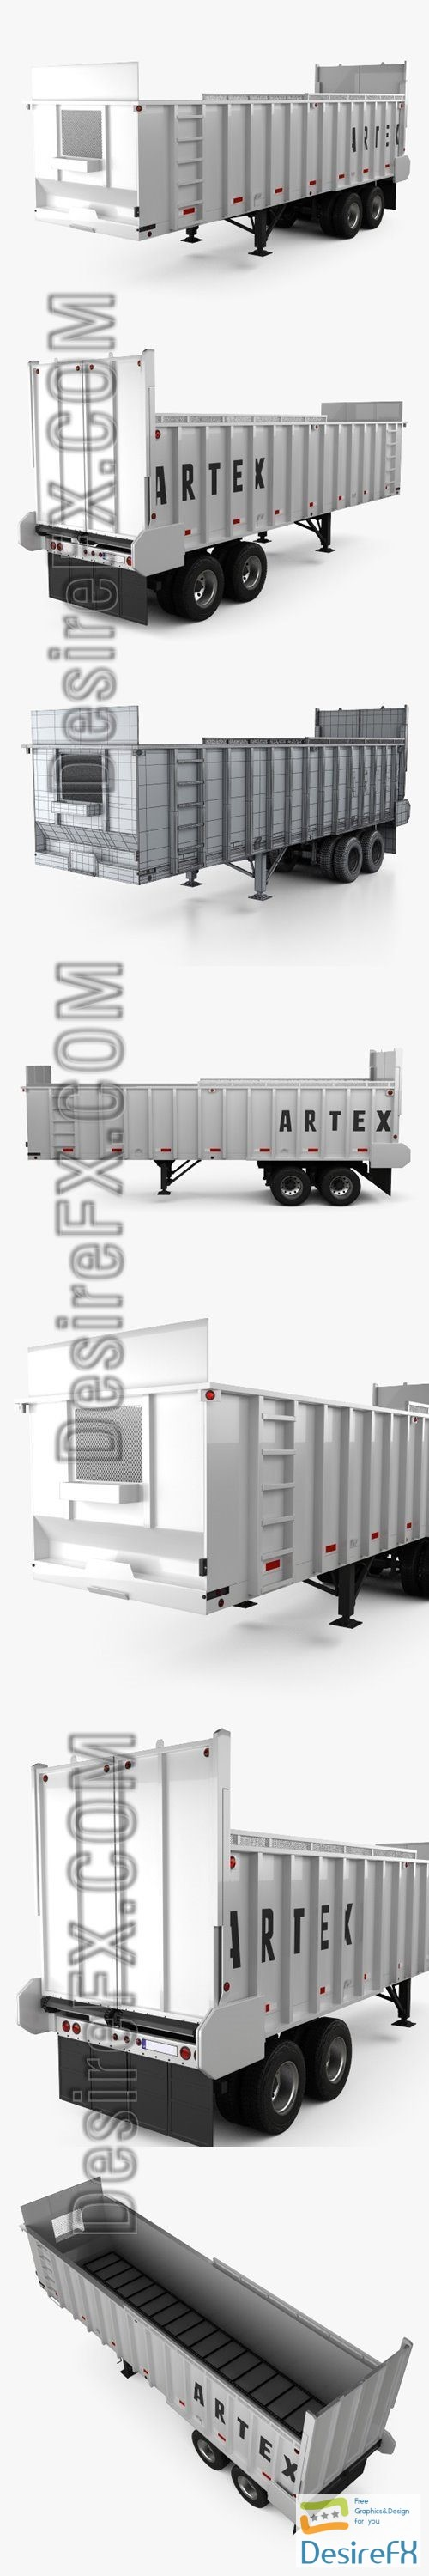 3d-models - Artex TR3606-8 Silage Semi Trailer 2018 3D Model